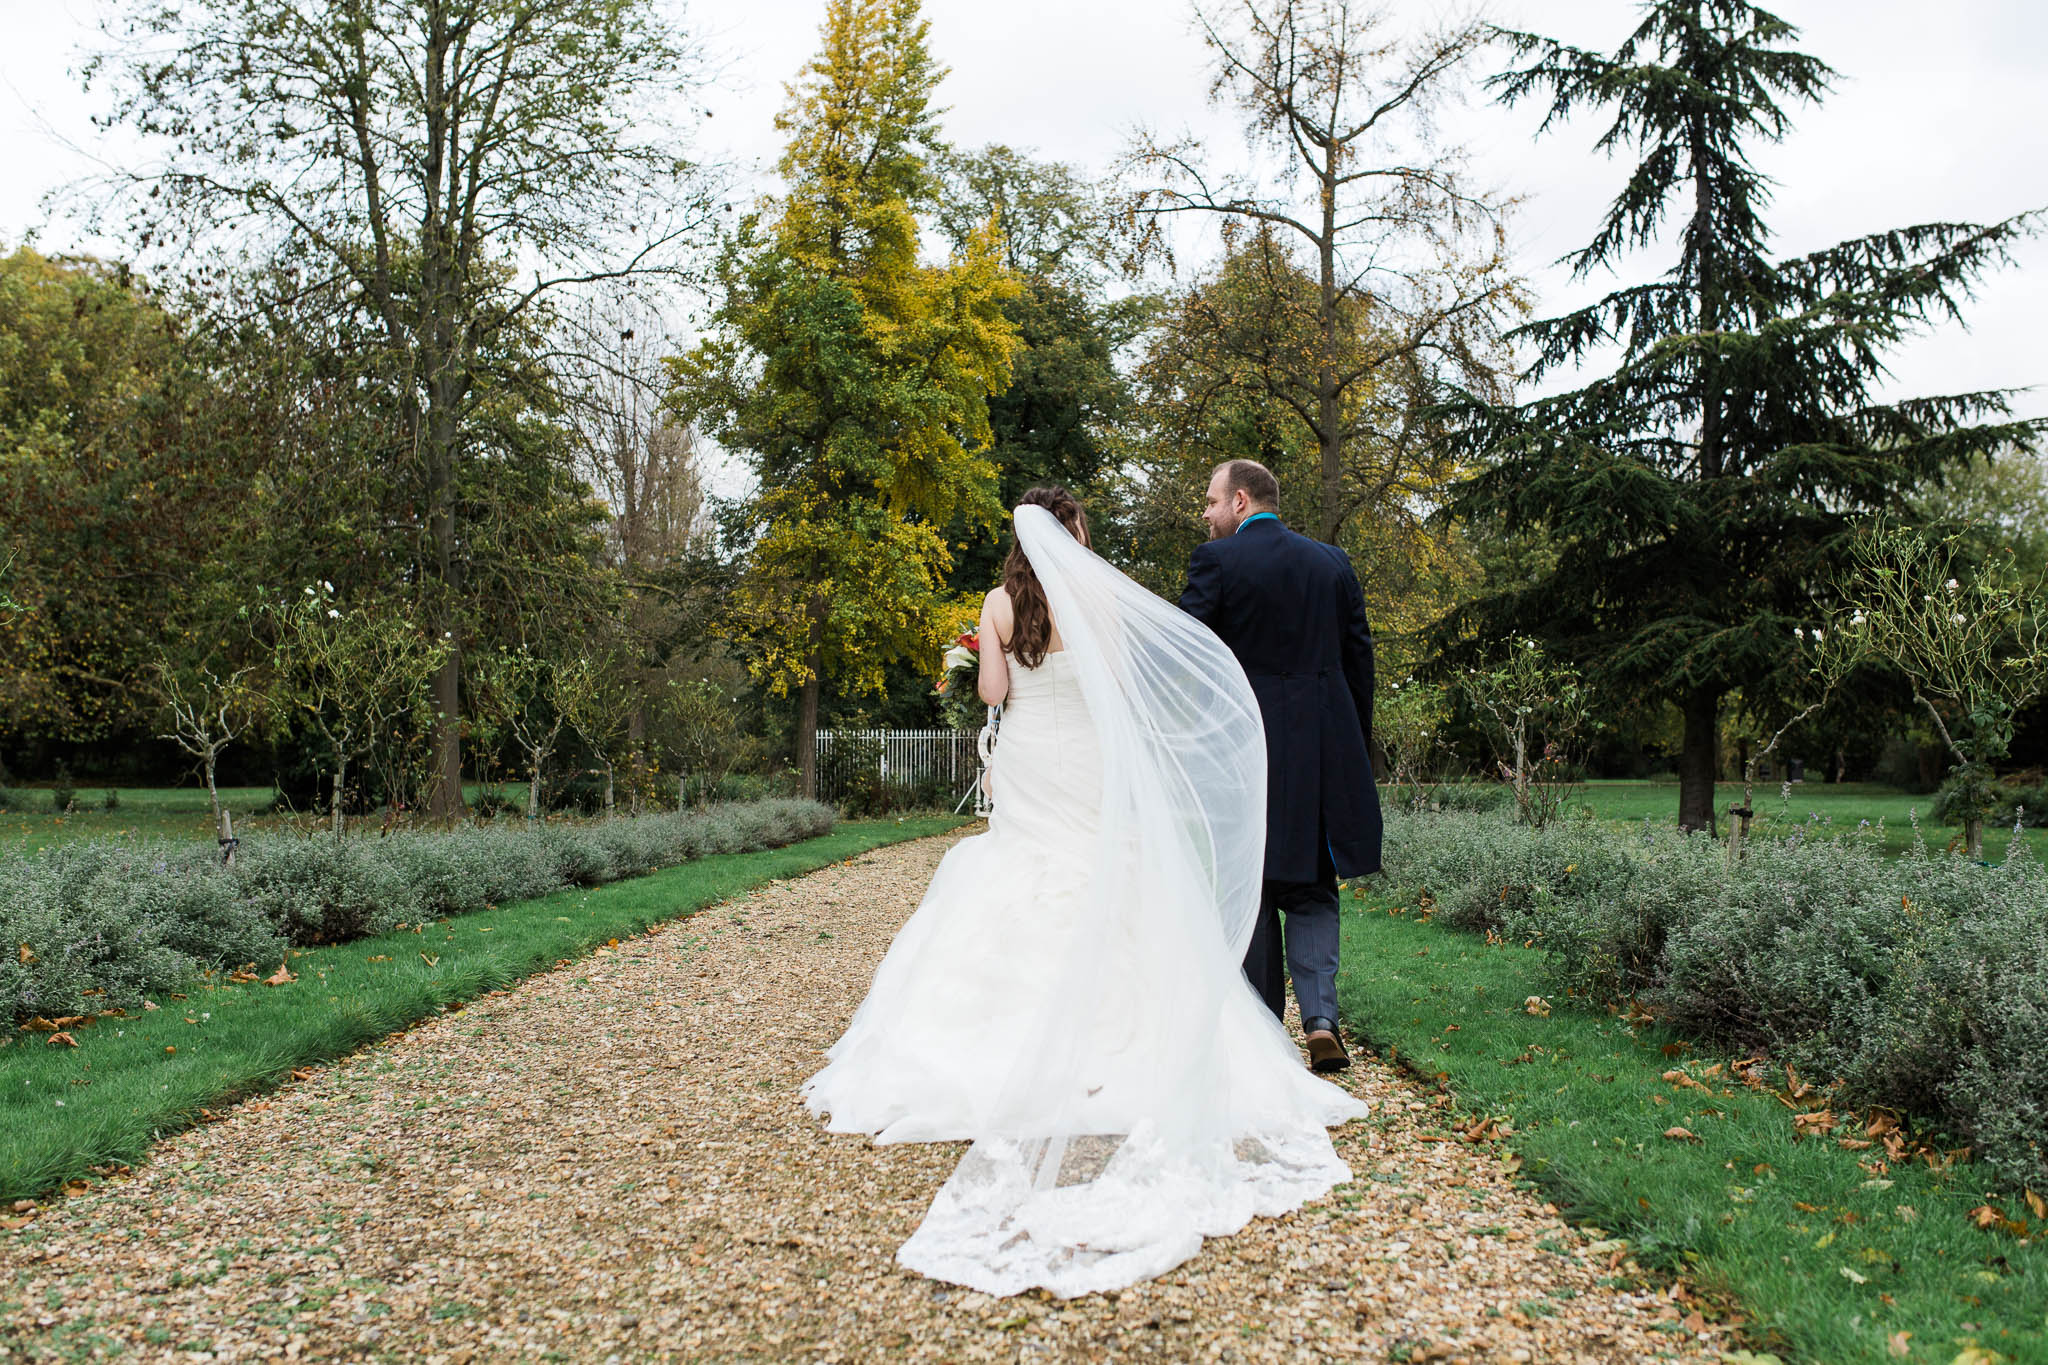 bride and groom walking away and veil blowing in wind - autumn wedding